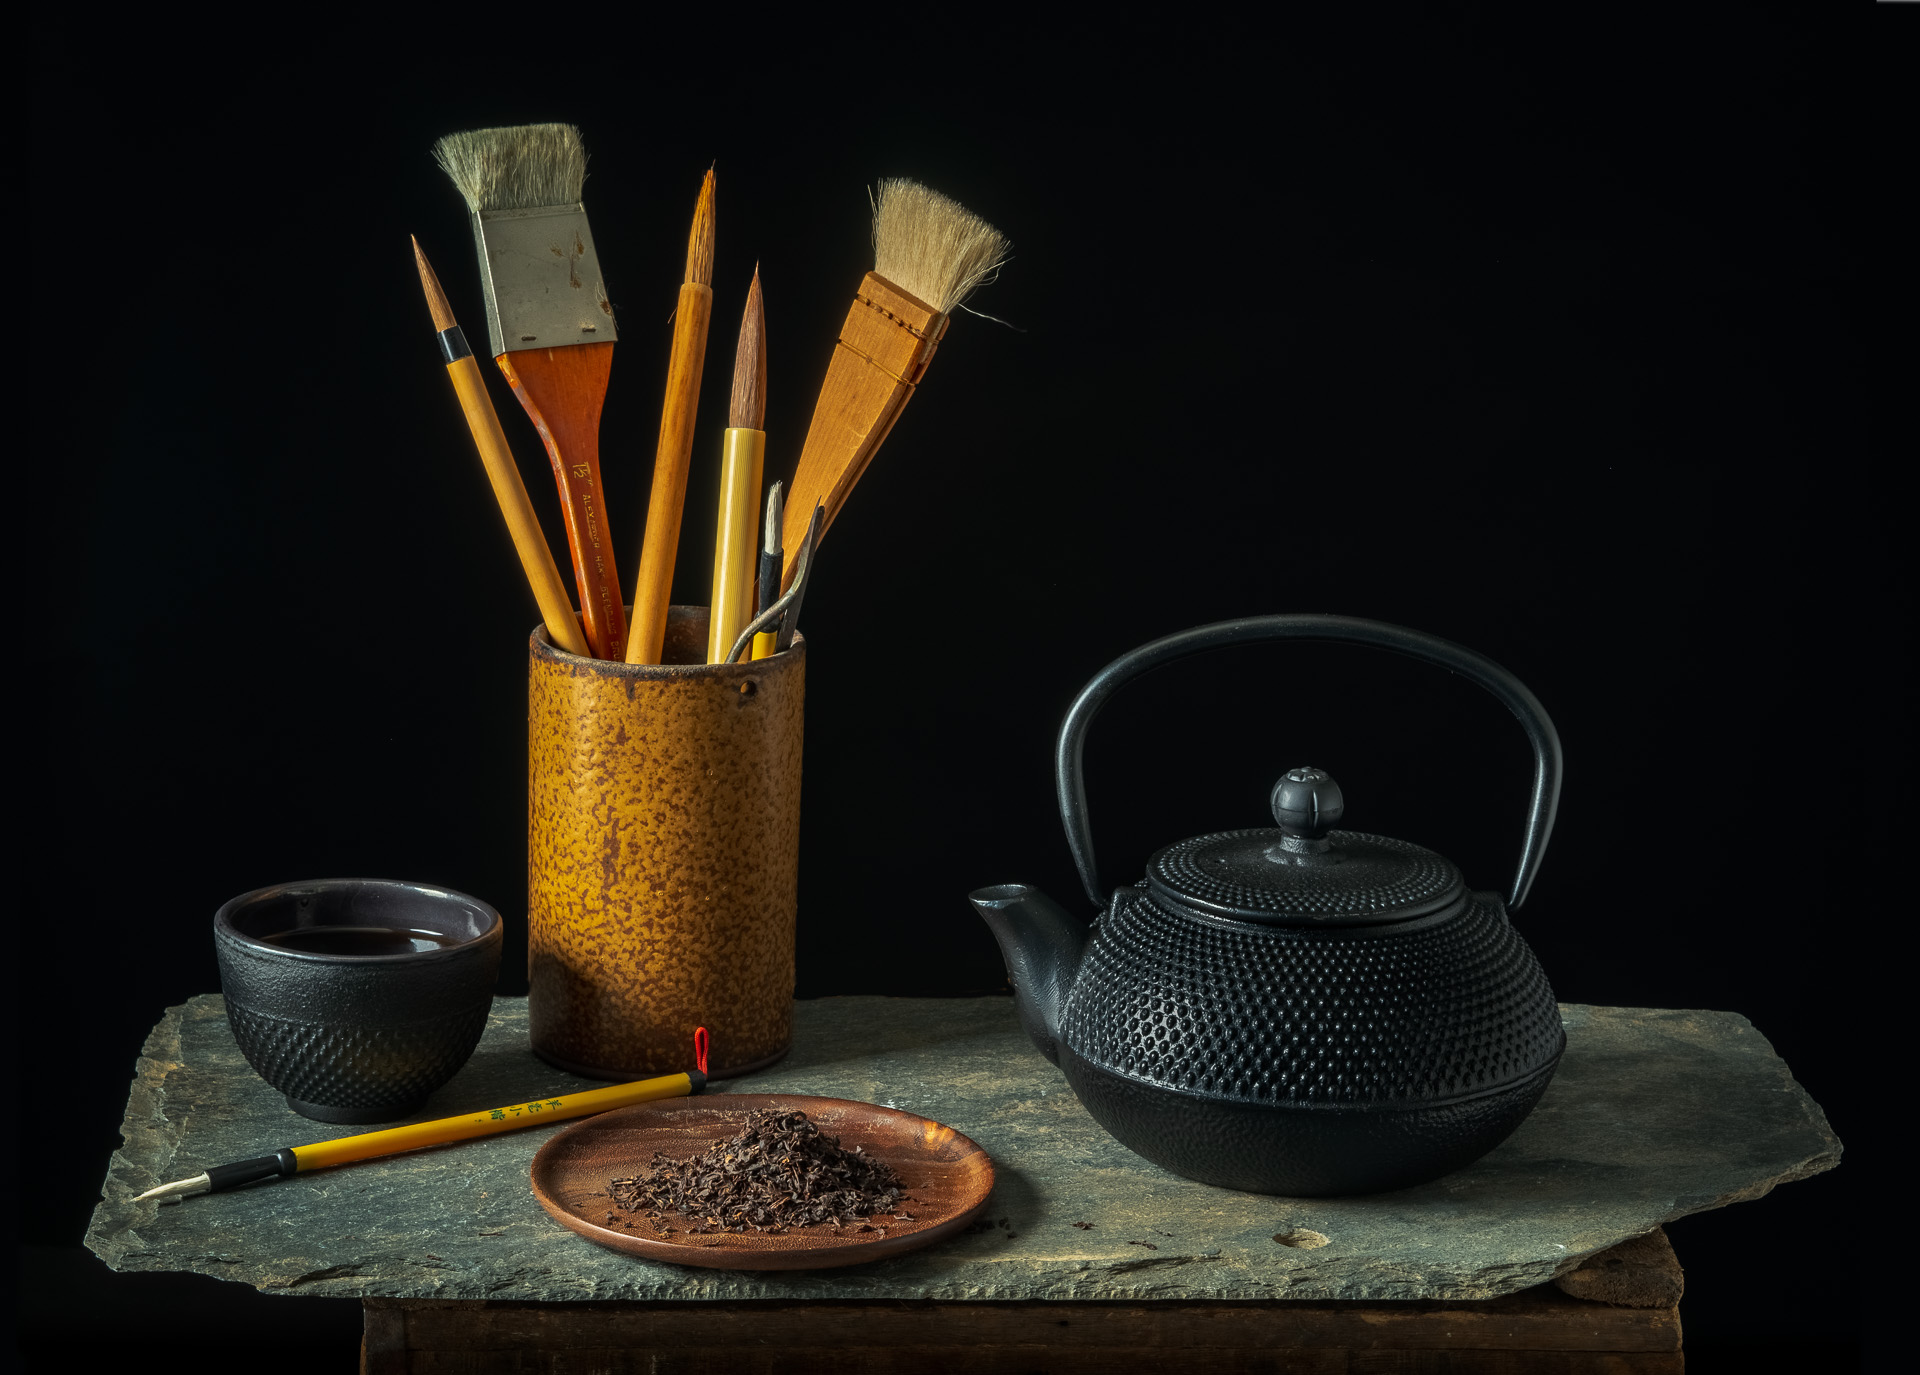 A Japanese Tea Pot and Cup with tea leaves and calligraphy brushed and vase